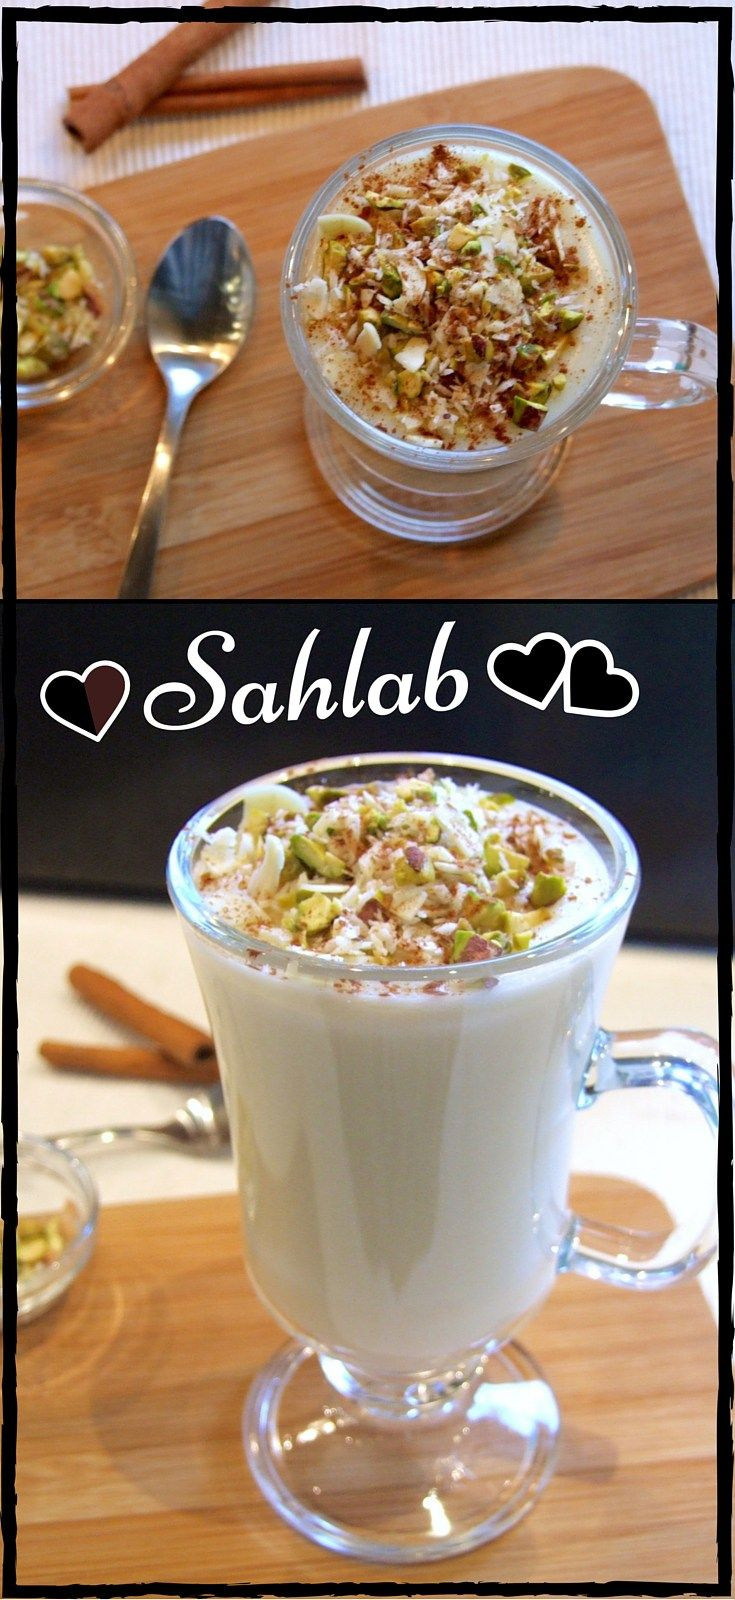 Rich, creamy & delicious, topped with nuts and cinnamon, sahlab is a winter treat! The perfect hot drink to say 'I love you' :-D